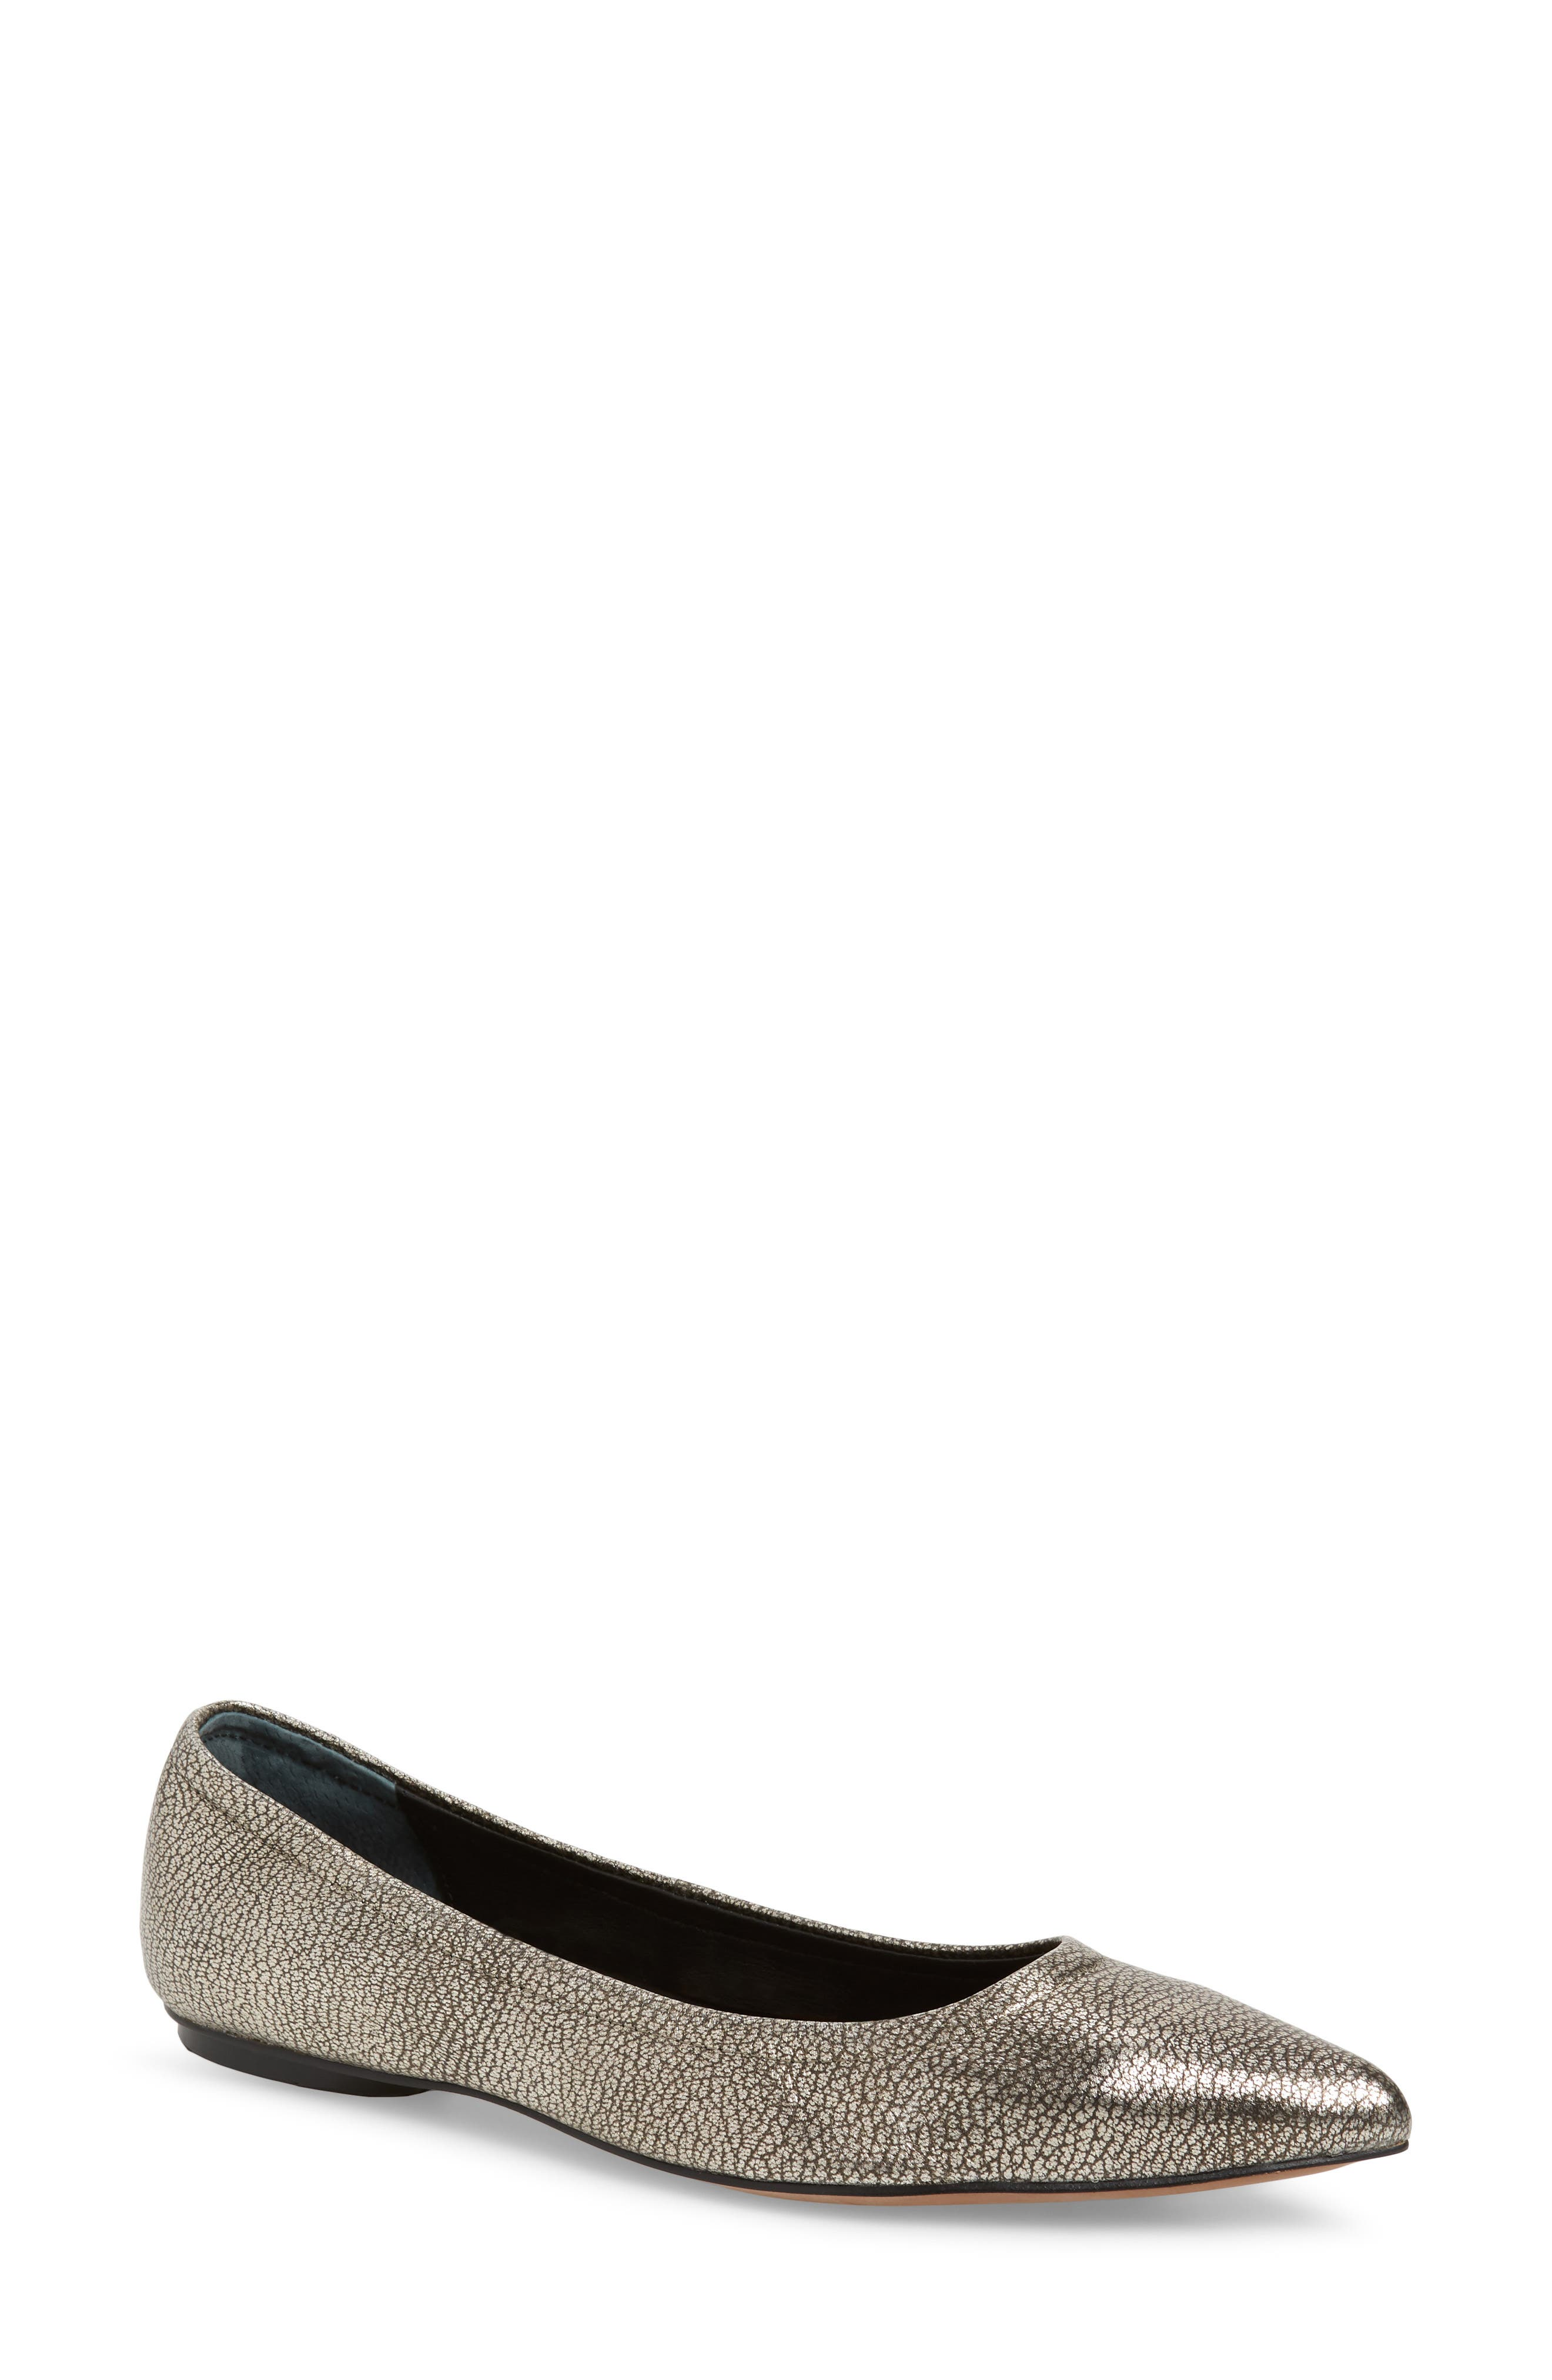 LINEA PAOLO, Nico Pointy Toe Flat, Main thumbnail 1, color, ANTHRACITE LEATHER